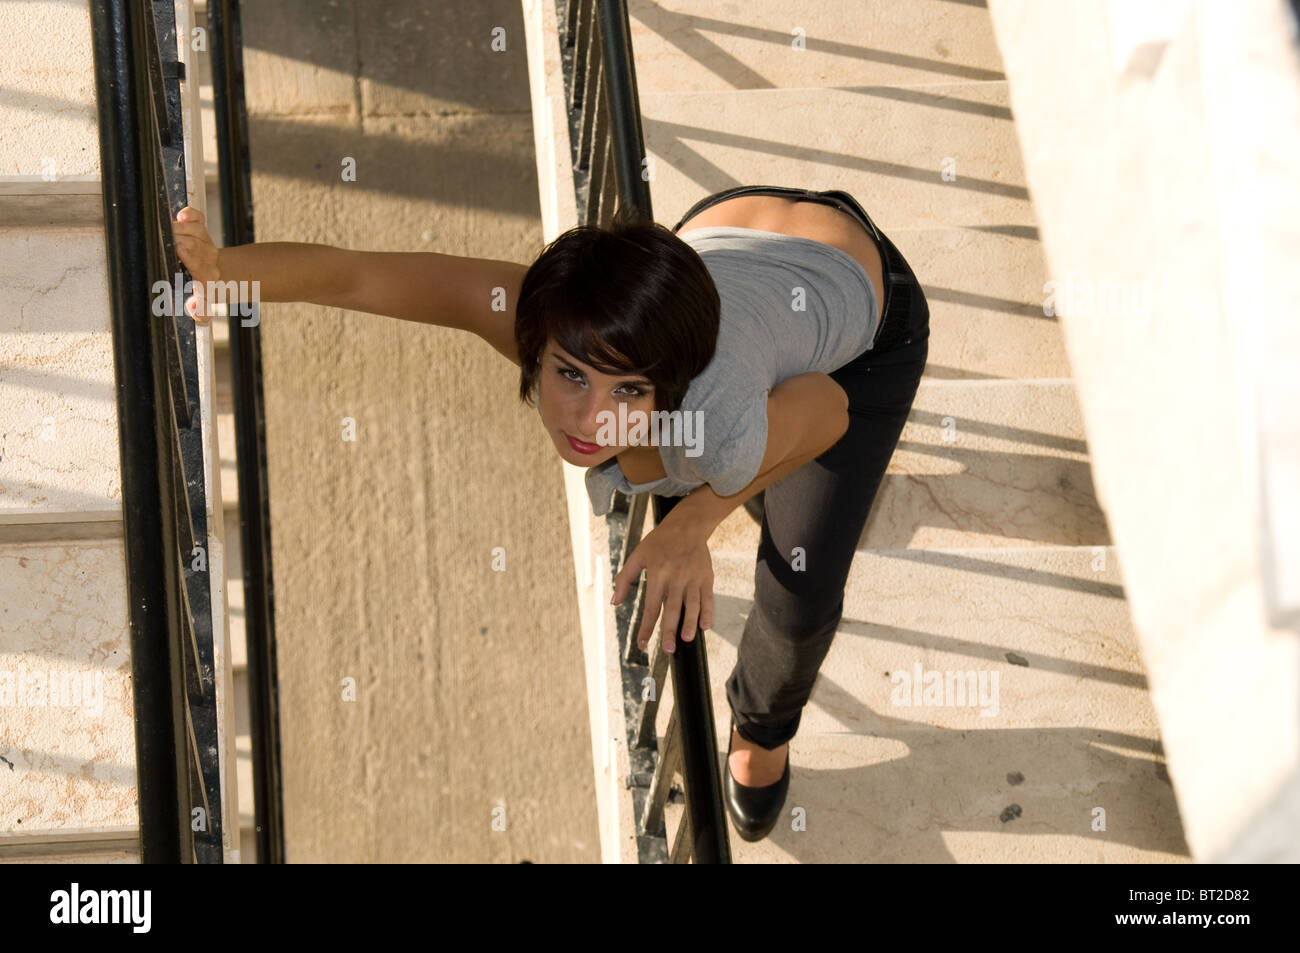 An attractive young woman leans over the banisters of a flight of stairs to look upwards. - Stock Image